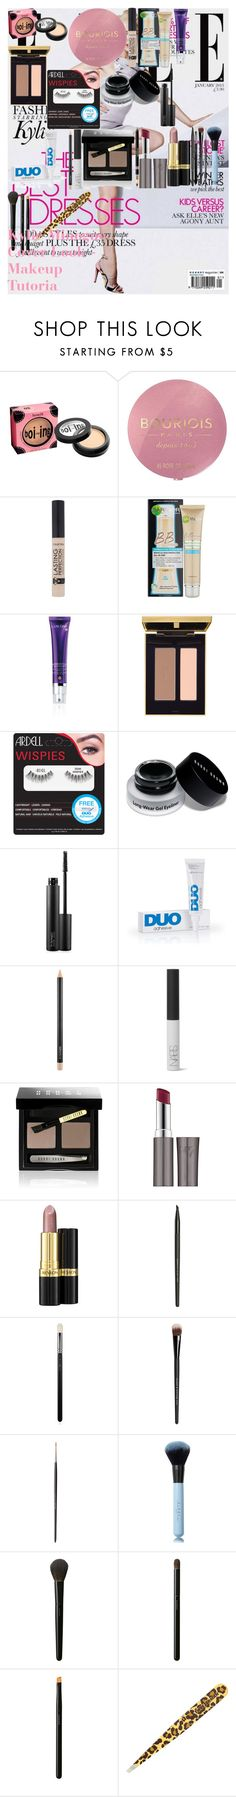 """""""Kylie Minogue Cover Look - Makeup Tutorial"""" by oroartye-1 on Polyvore featuring beauty, Kylie Minogue, Benefit, Bourjois, Garnier, Lancôme, Yves Saint Laurent, Ardell, MAC Cosmetics and DUO"""